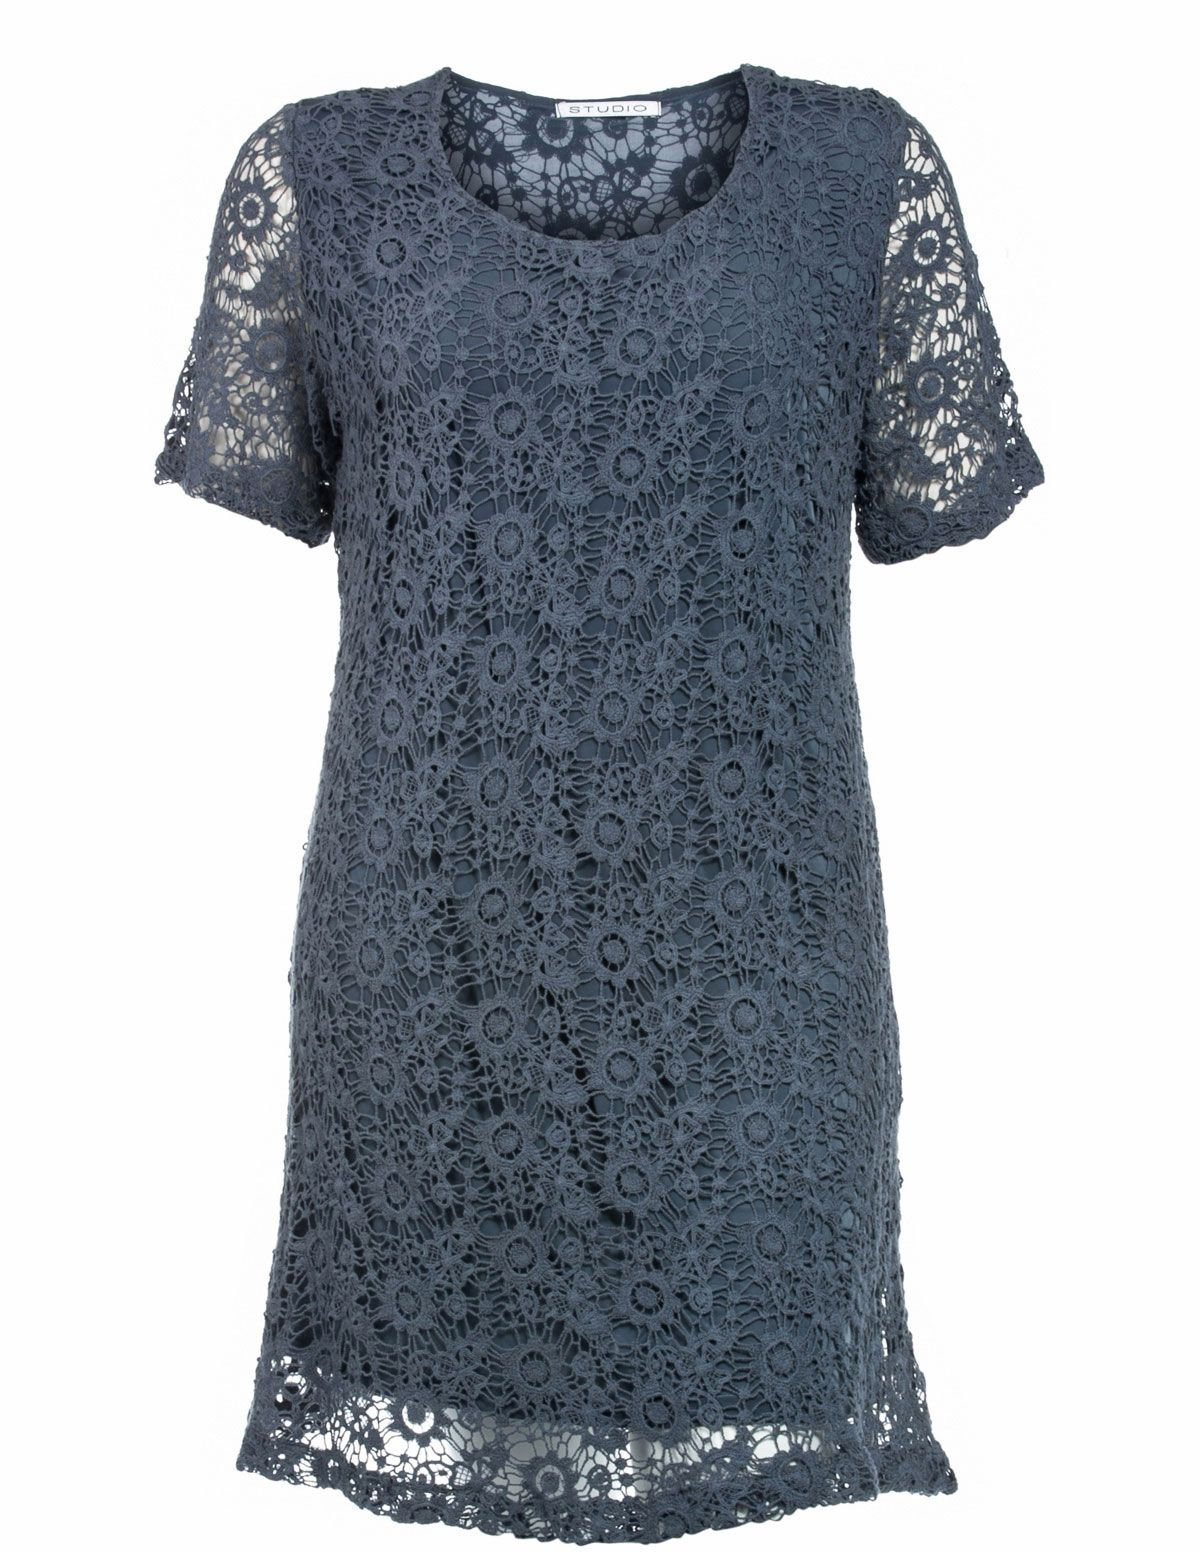 Crocheted cotton dress in Blue designed by Studio to find in Category Dresses at navabi.de